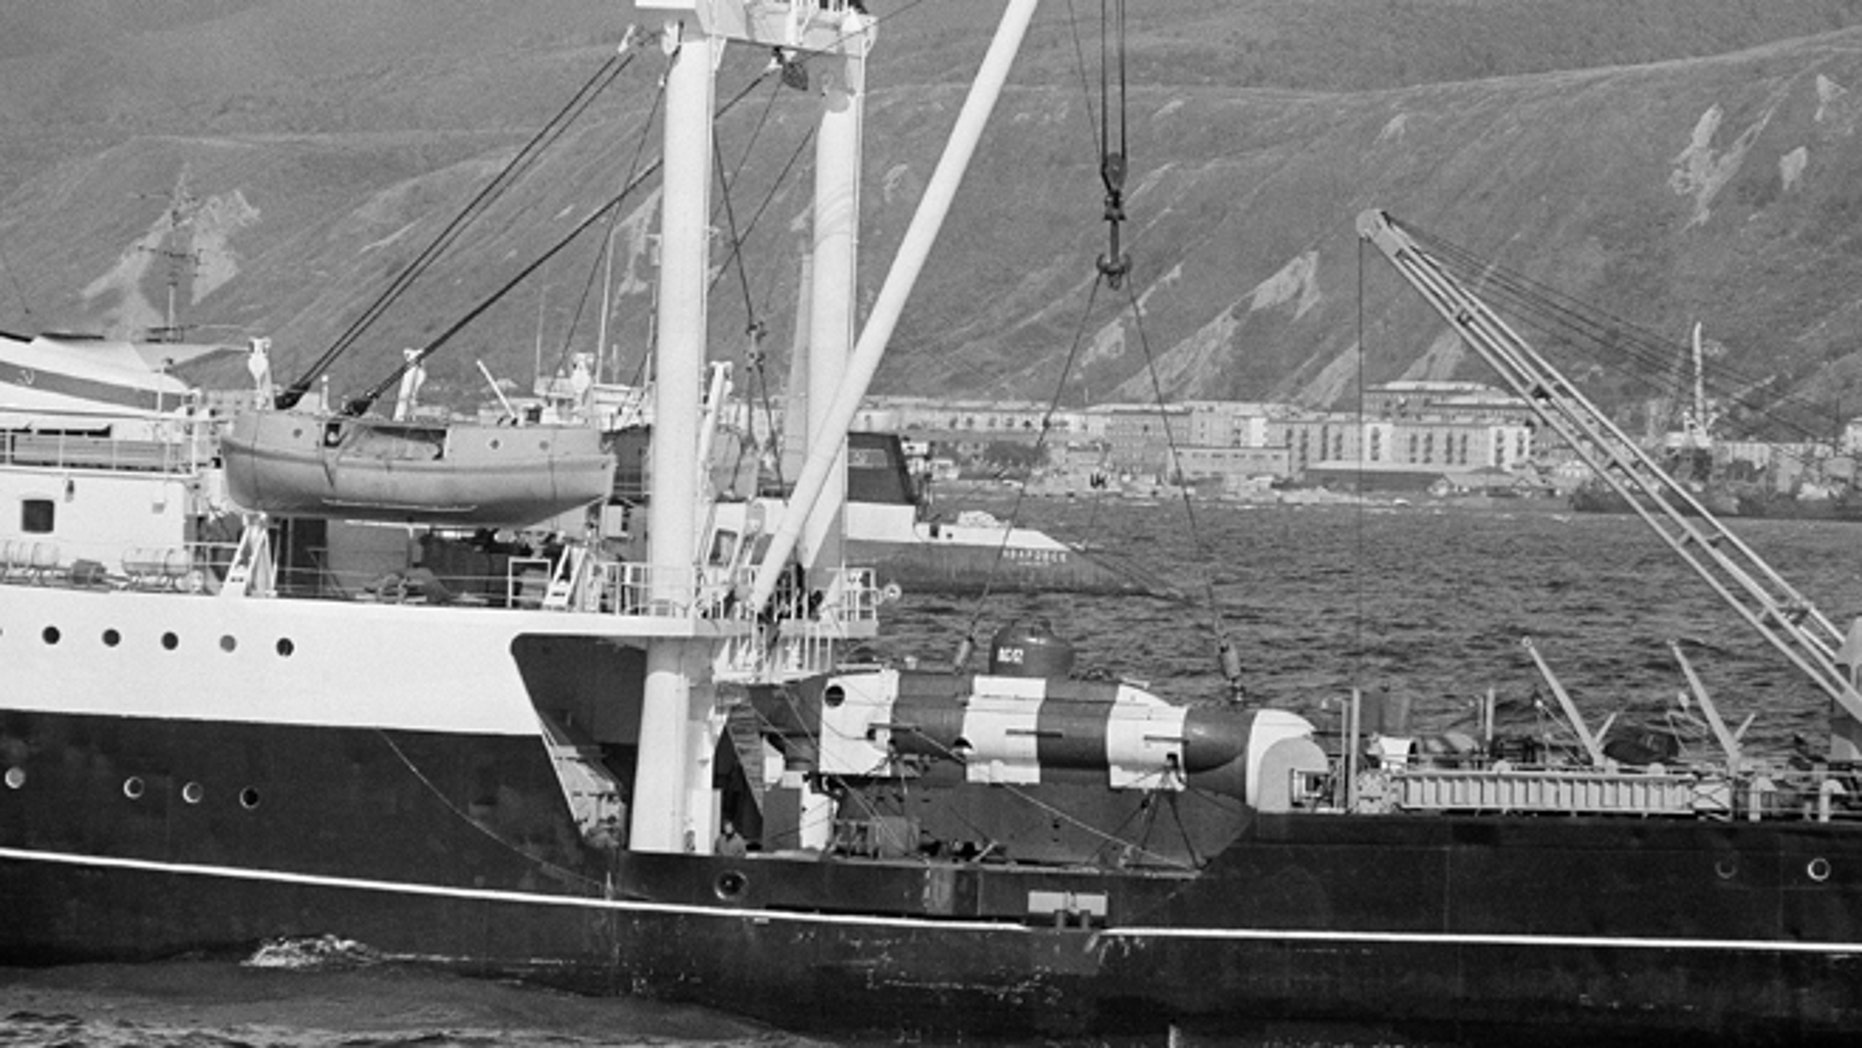 Sept. 27, 1983: A Soviet mini-submarine used to search for debris from Korean Air Lines Flight 007, shot down Sept. 1, 1983 near Sakhalin Island, rests on the deck of a conventional tender vessel in Nevel'sk, Sakhalin Island, in the East Sea off Russia.